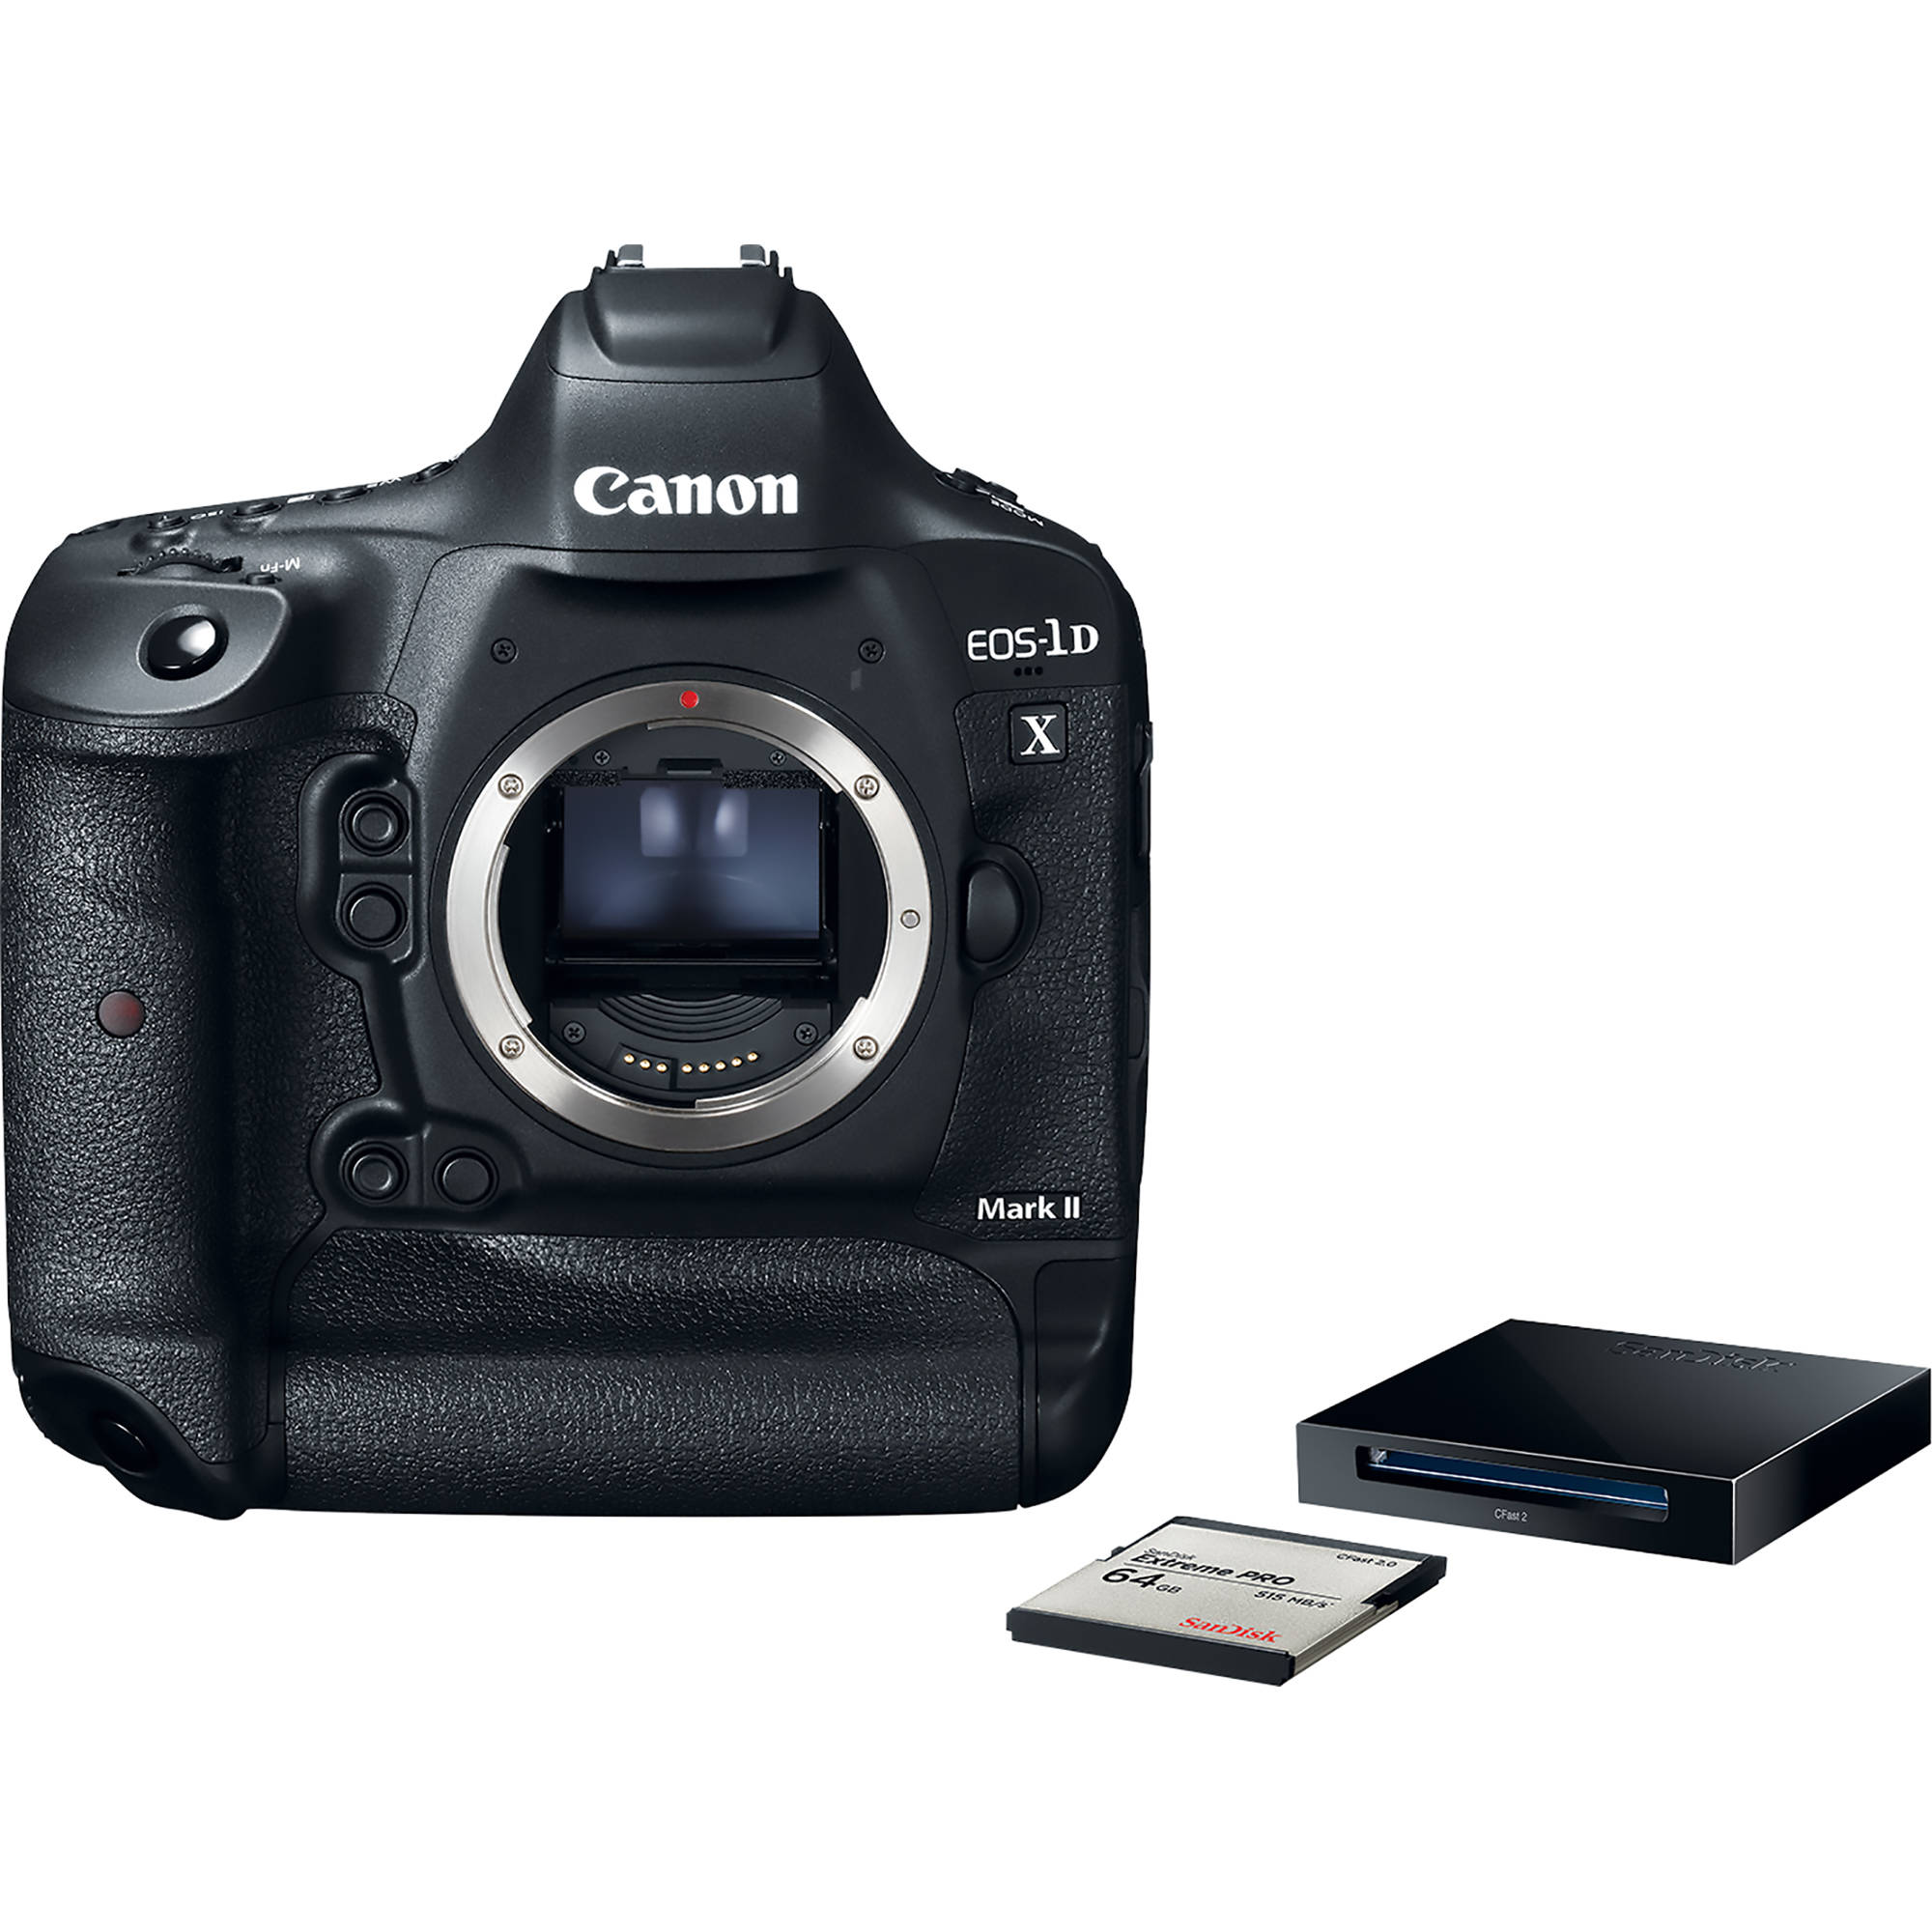 canon eos d x mark ii dslr camera premium kit c b h canon eos 1d x mark ii dslr camera premium kit 64gb card and reader